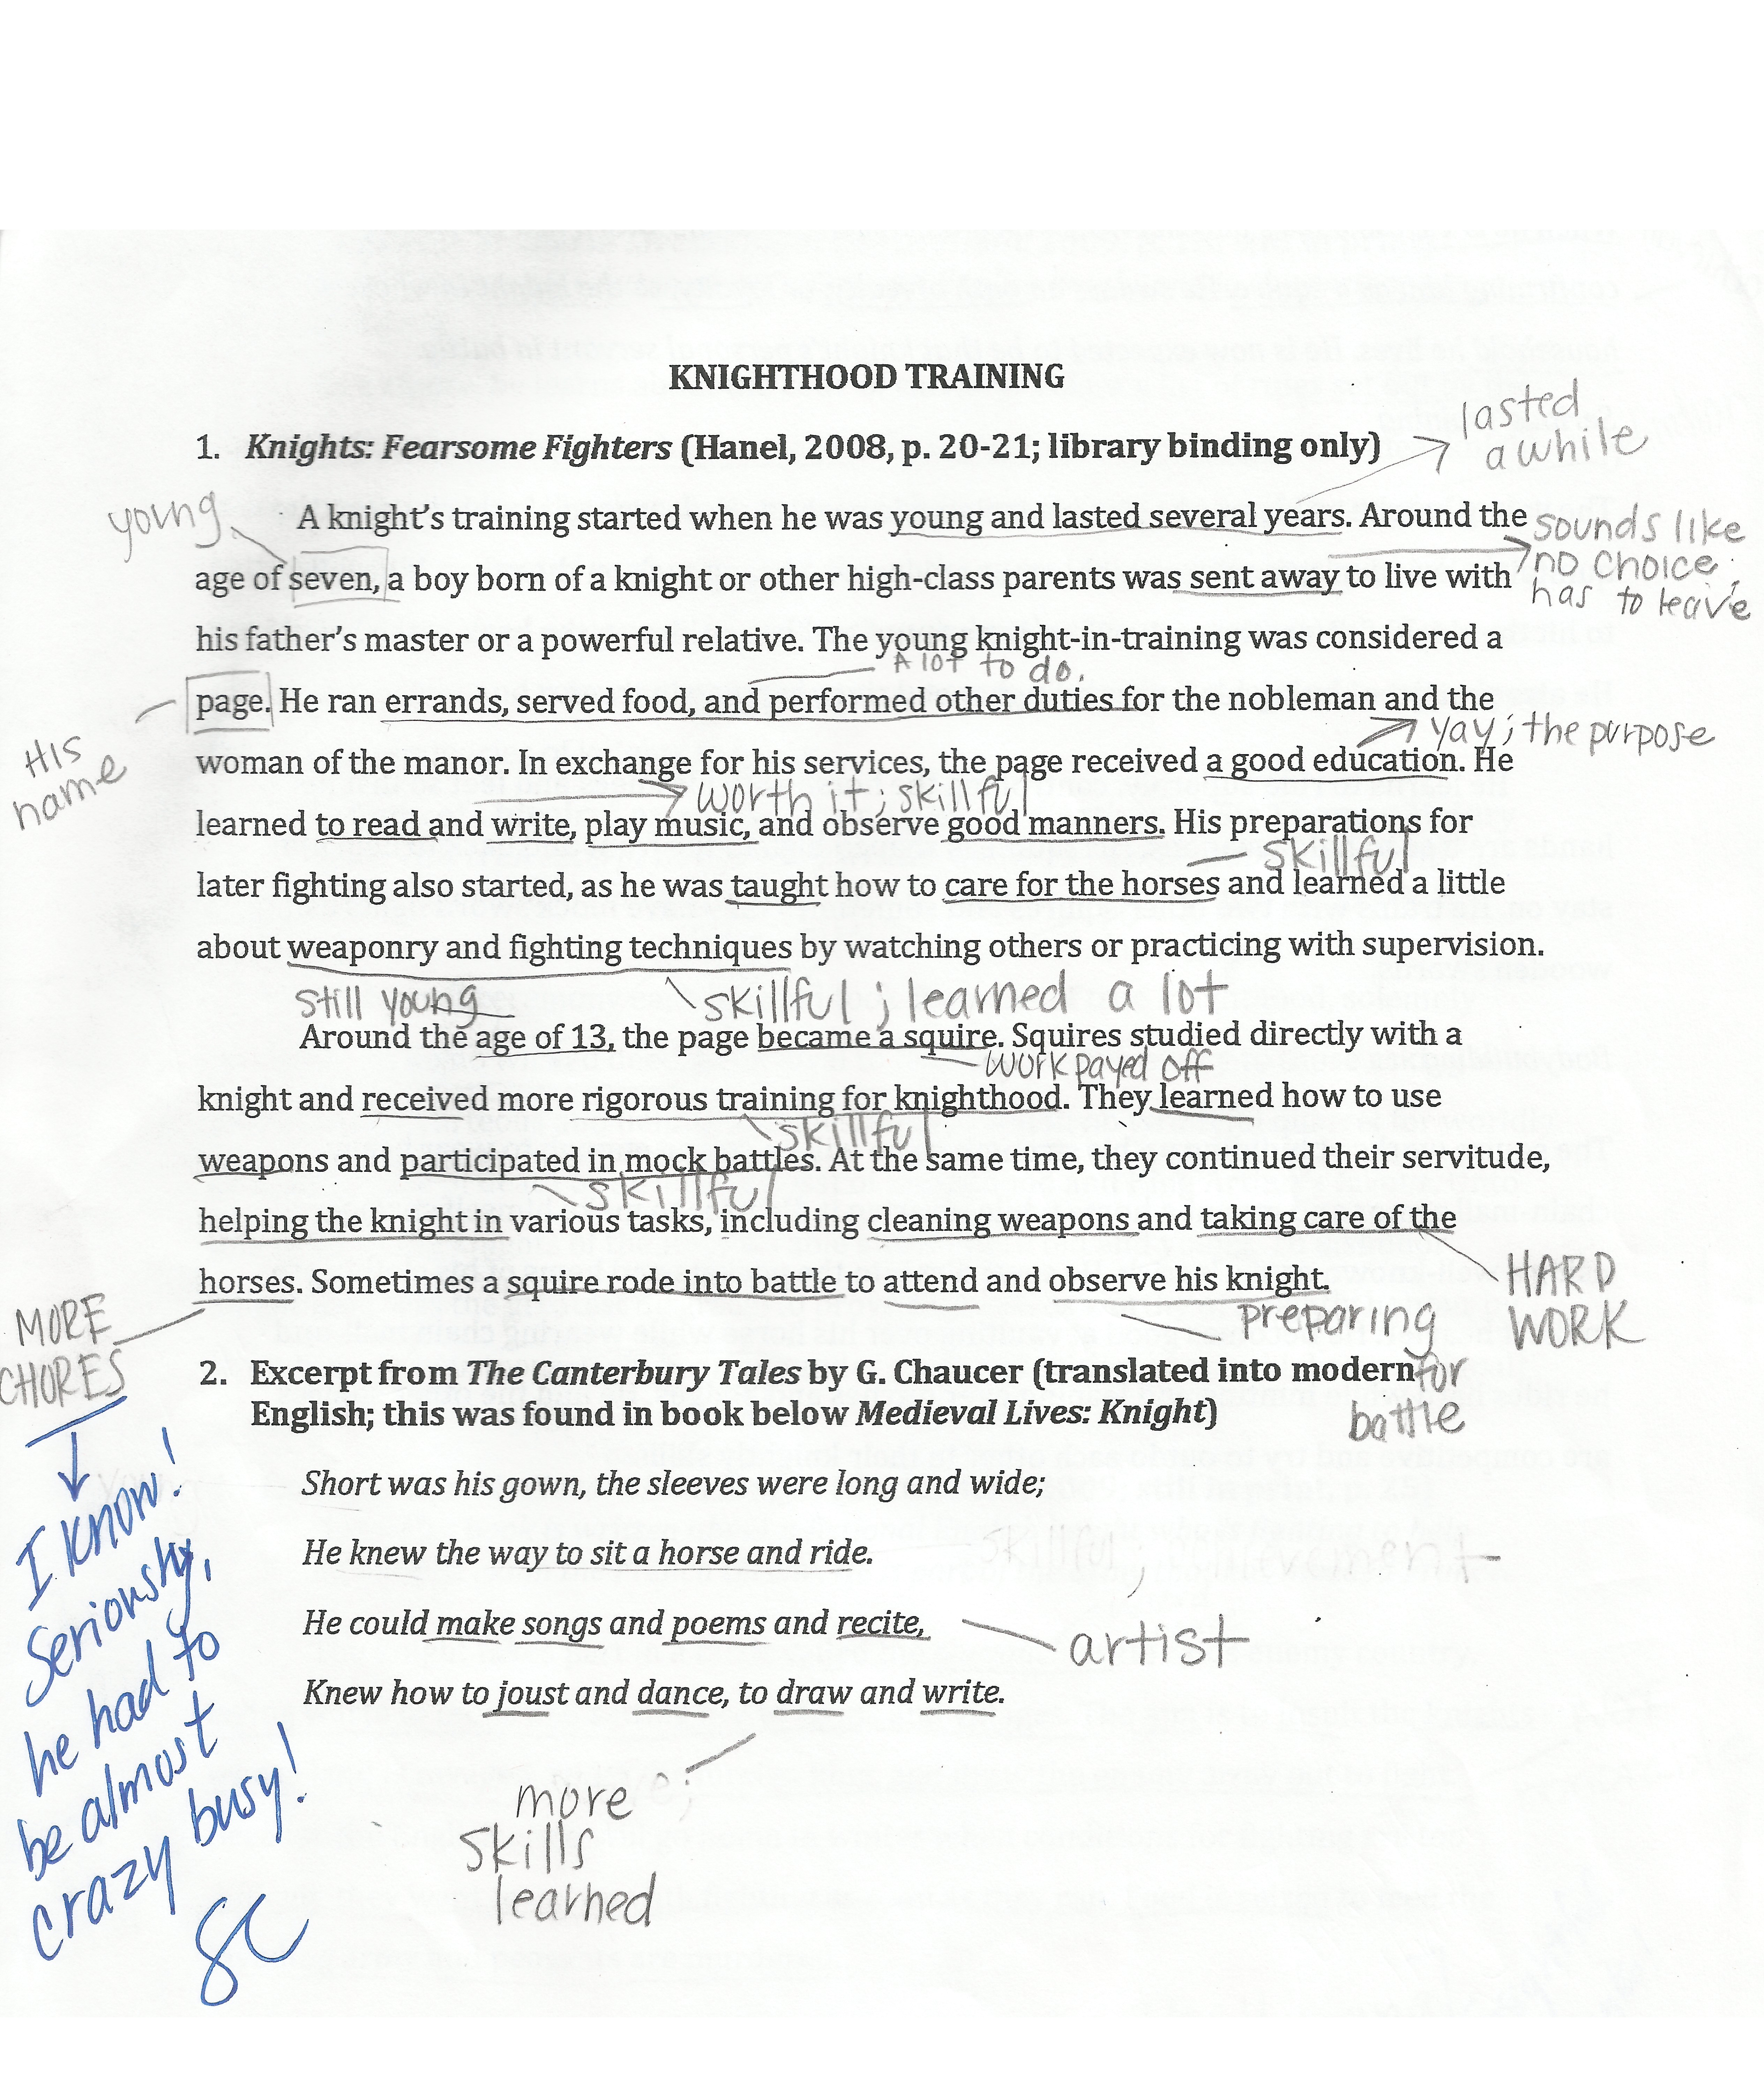 Student 1 annotated notes